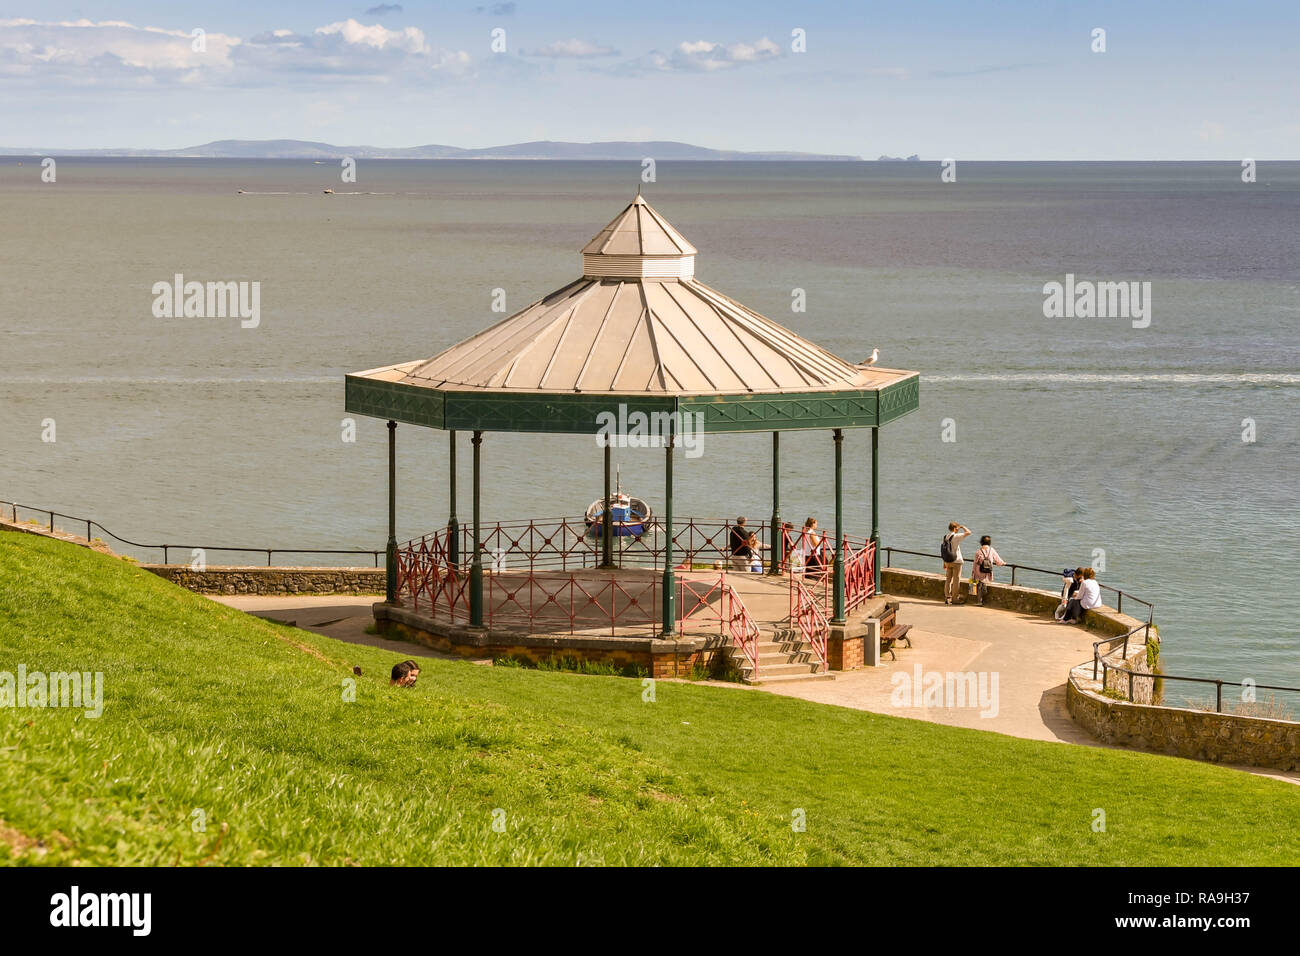 TENBY, PEMBROKESHIRE, WALES - AUGUST 2018: Bandstand and people on the coastal path in Tenby, West Wales. - Stock Image